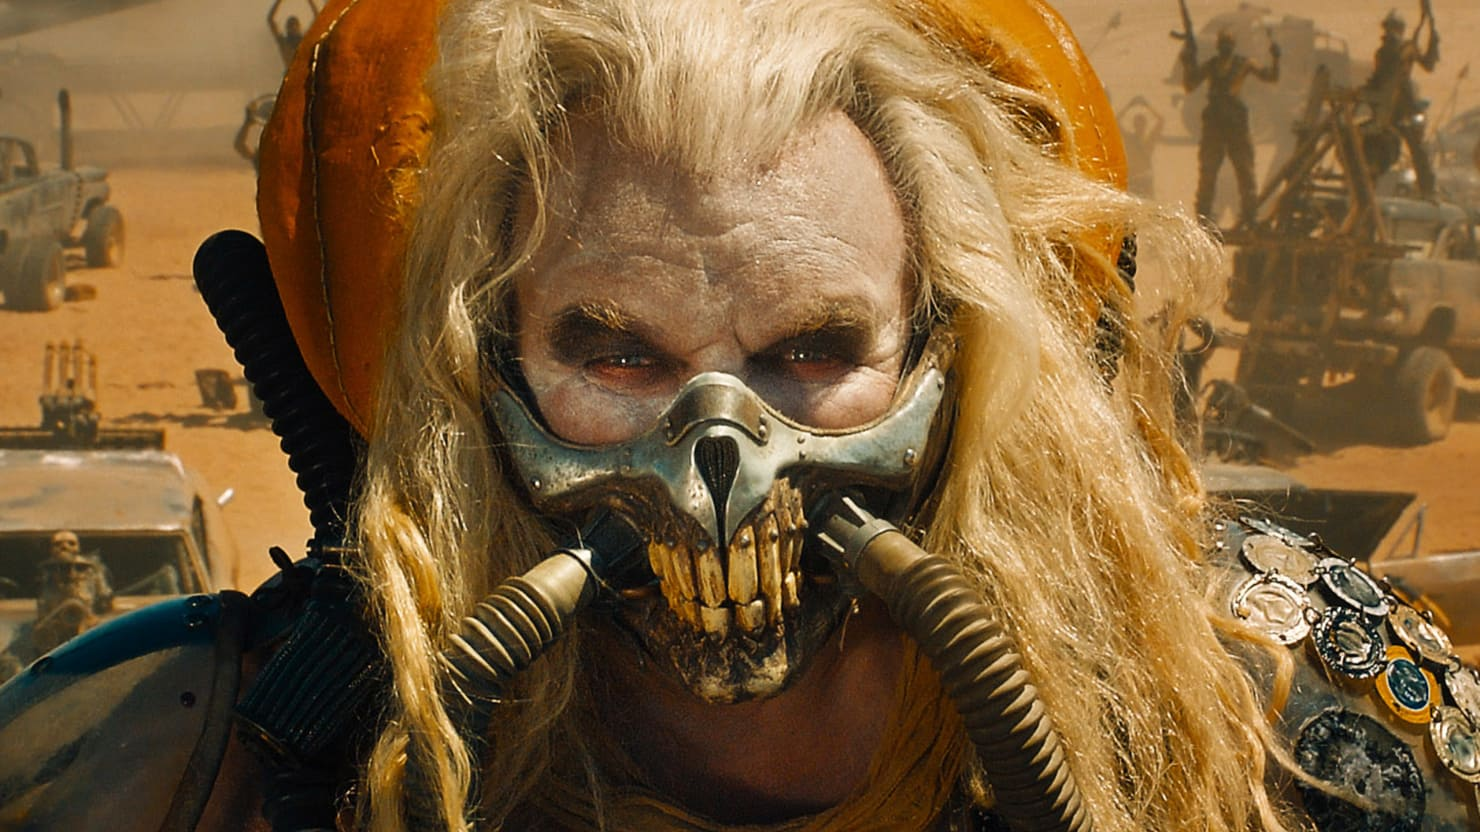 The Night Shift I Still Hate Mad Max Fury Road Action A Go Llc Engine Diagram Setting Constantly Breaks Its Own Rules